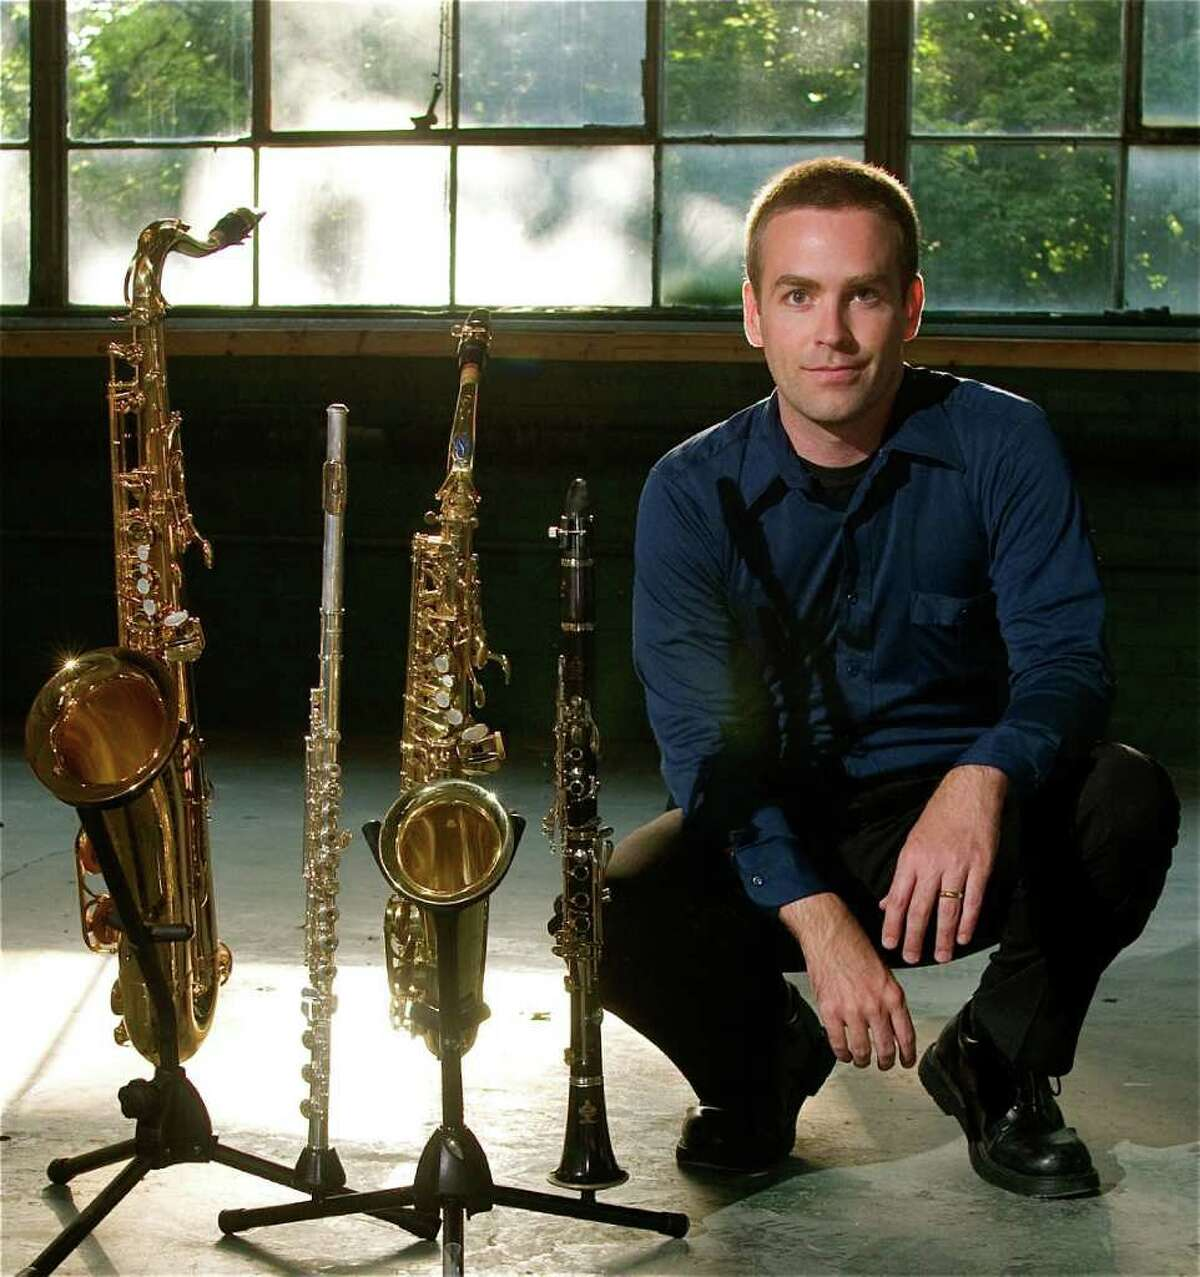 Daniel Bennett, shown here, will perform as part of his trio, Daniel Bennett Group, in a free concert Sunday at the Ridgefield Library at 2 p.m. The award-winning Manhattan jazz trio includes Bennett on alto saxophone and flute, guitarist Mark Cocheo, and Tyson Stubelek on drums.